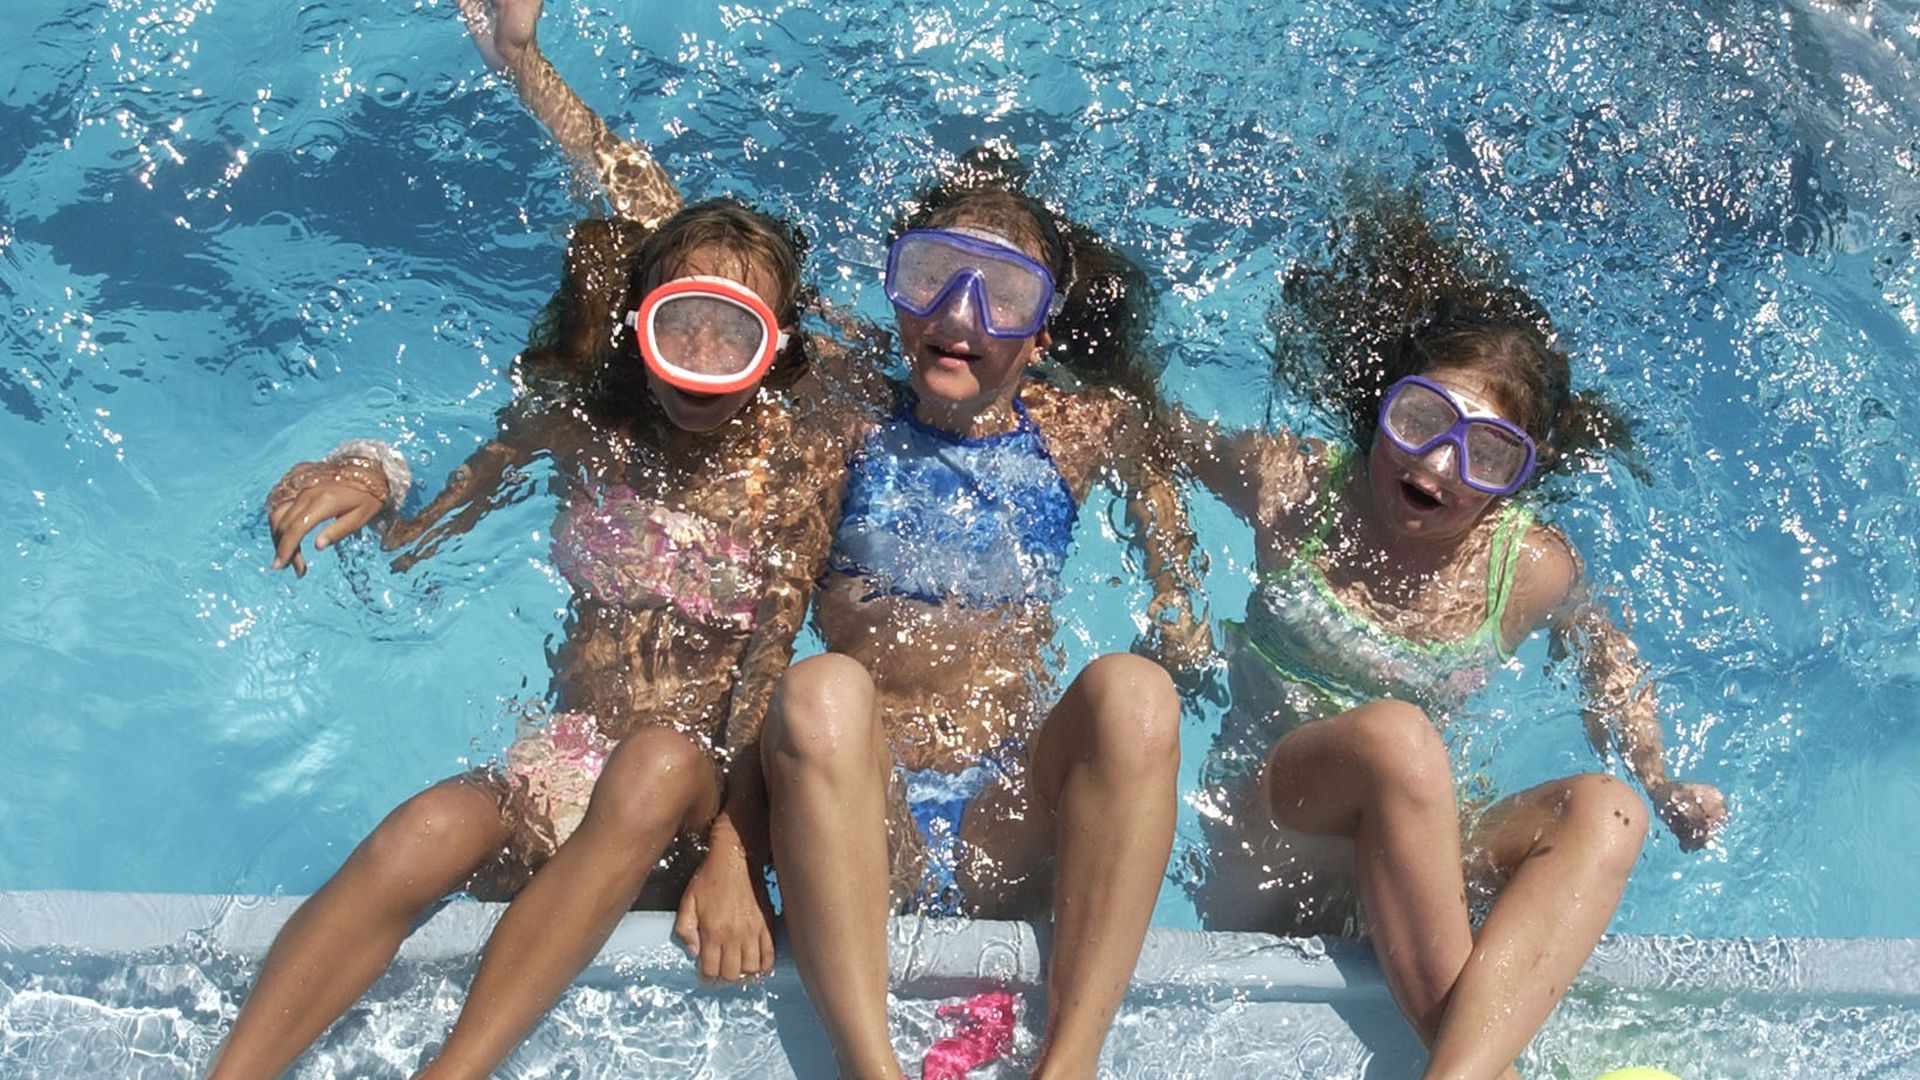 A photo of young girls in a pool